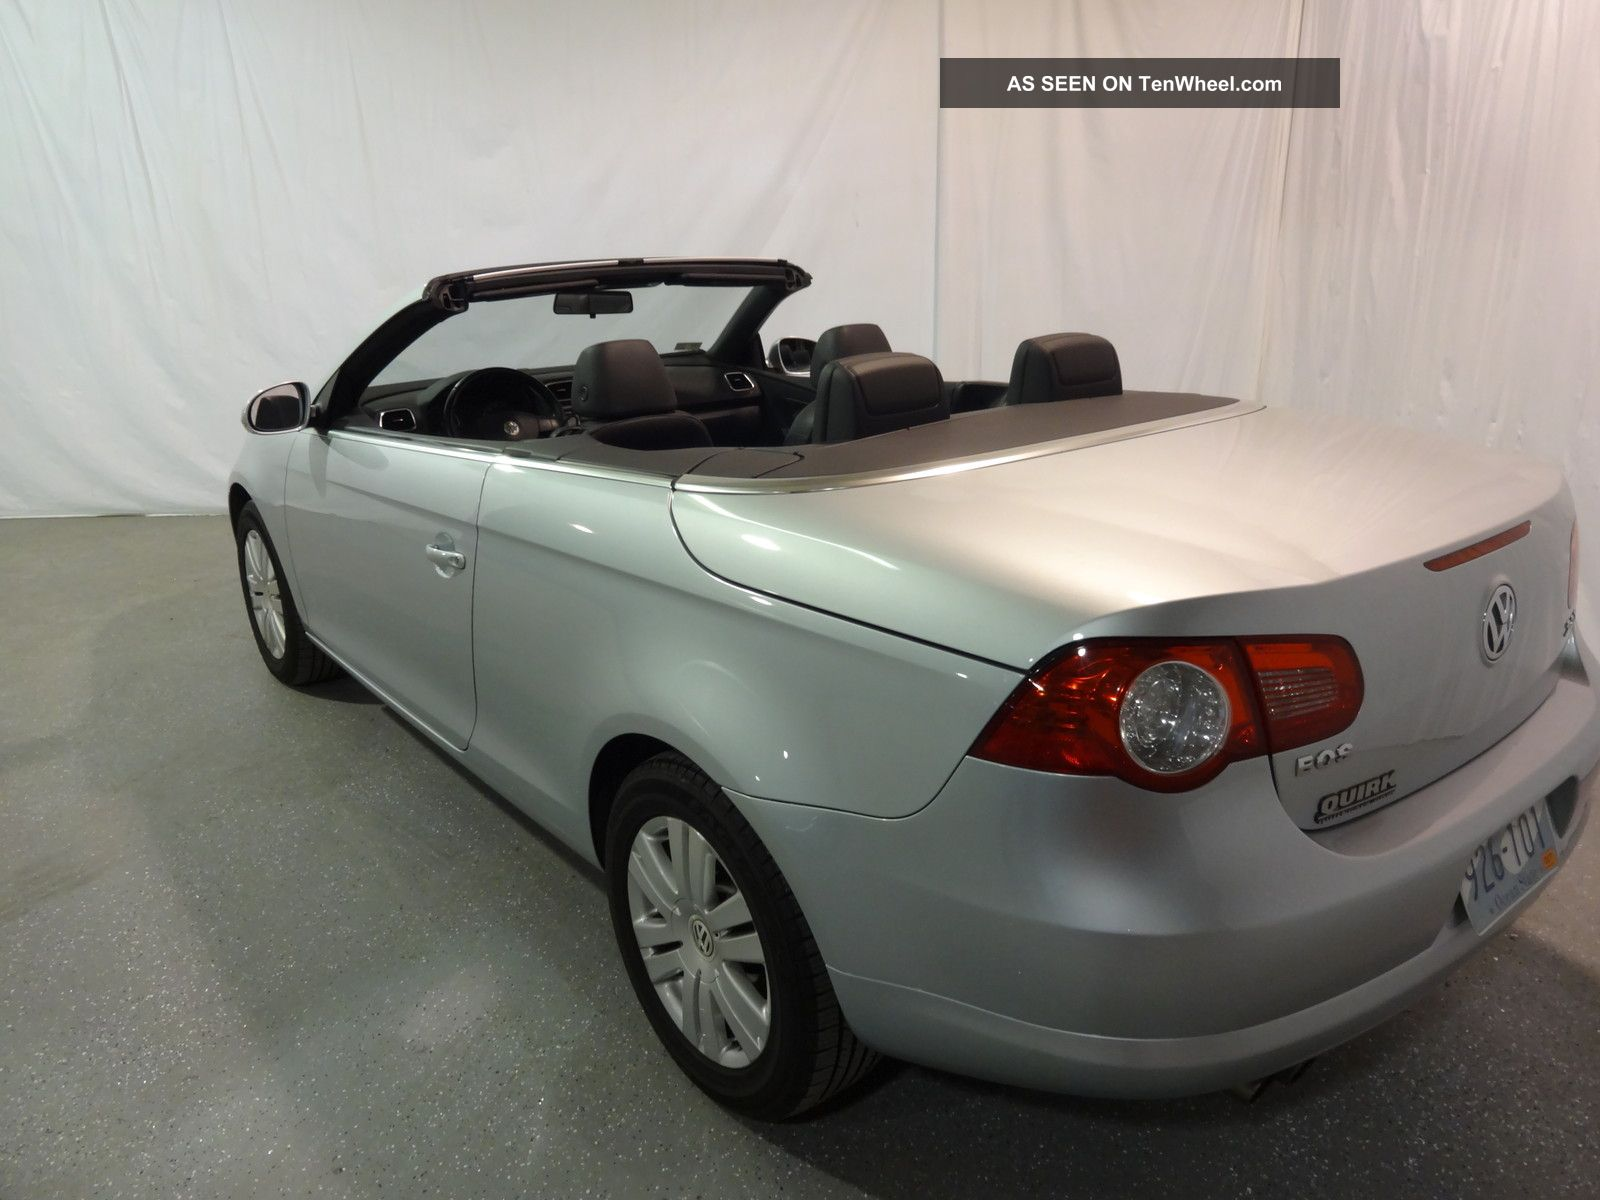 2008 volkswagen eos turbo convertible 2 door 2 0l. Black Bedroom Furniture Sets. Home Design Ideas